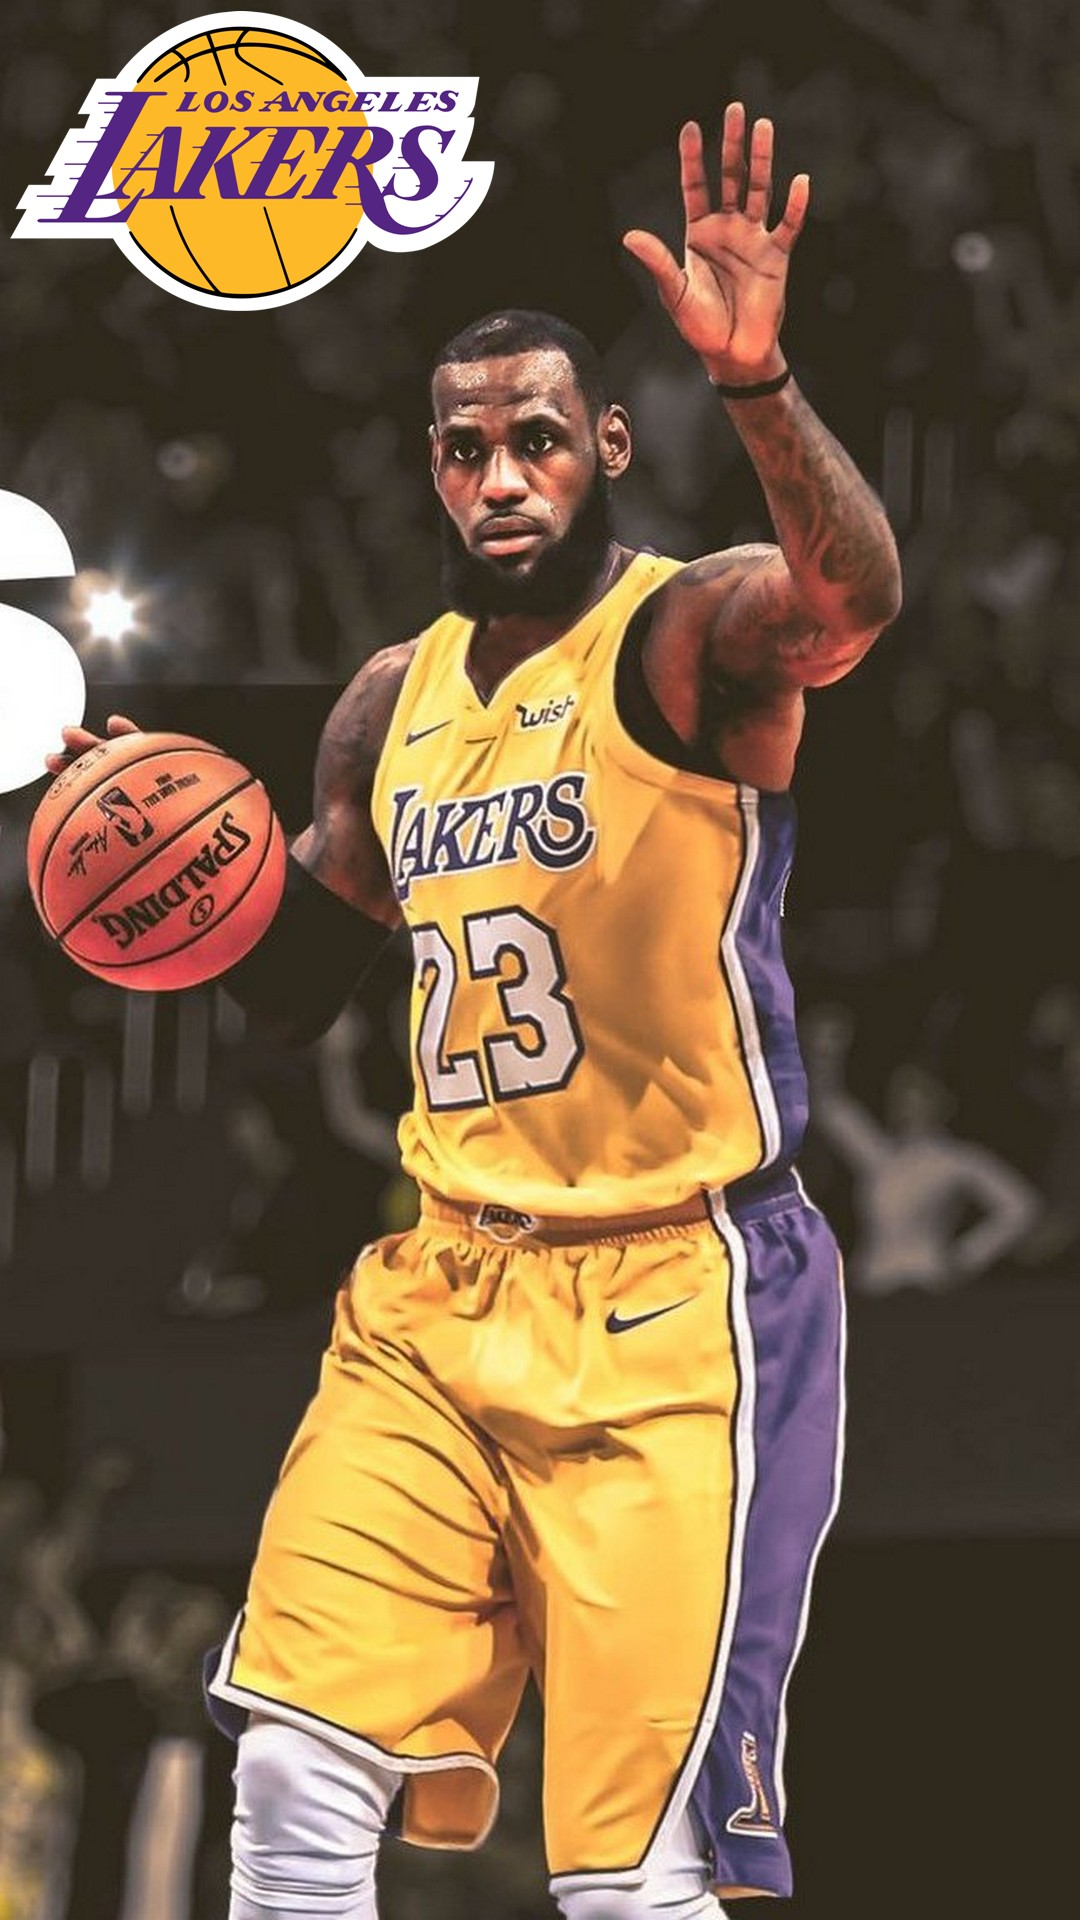 LA Lakers LeBron James HD Wallpaper For iPhone 2020 Basketball 1080x1920